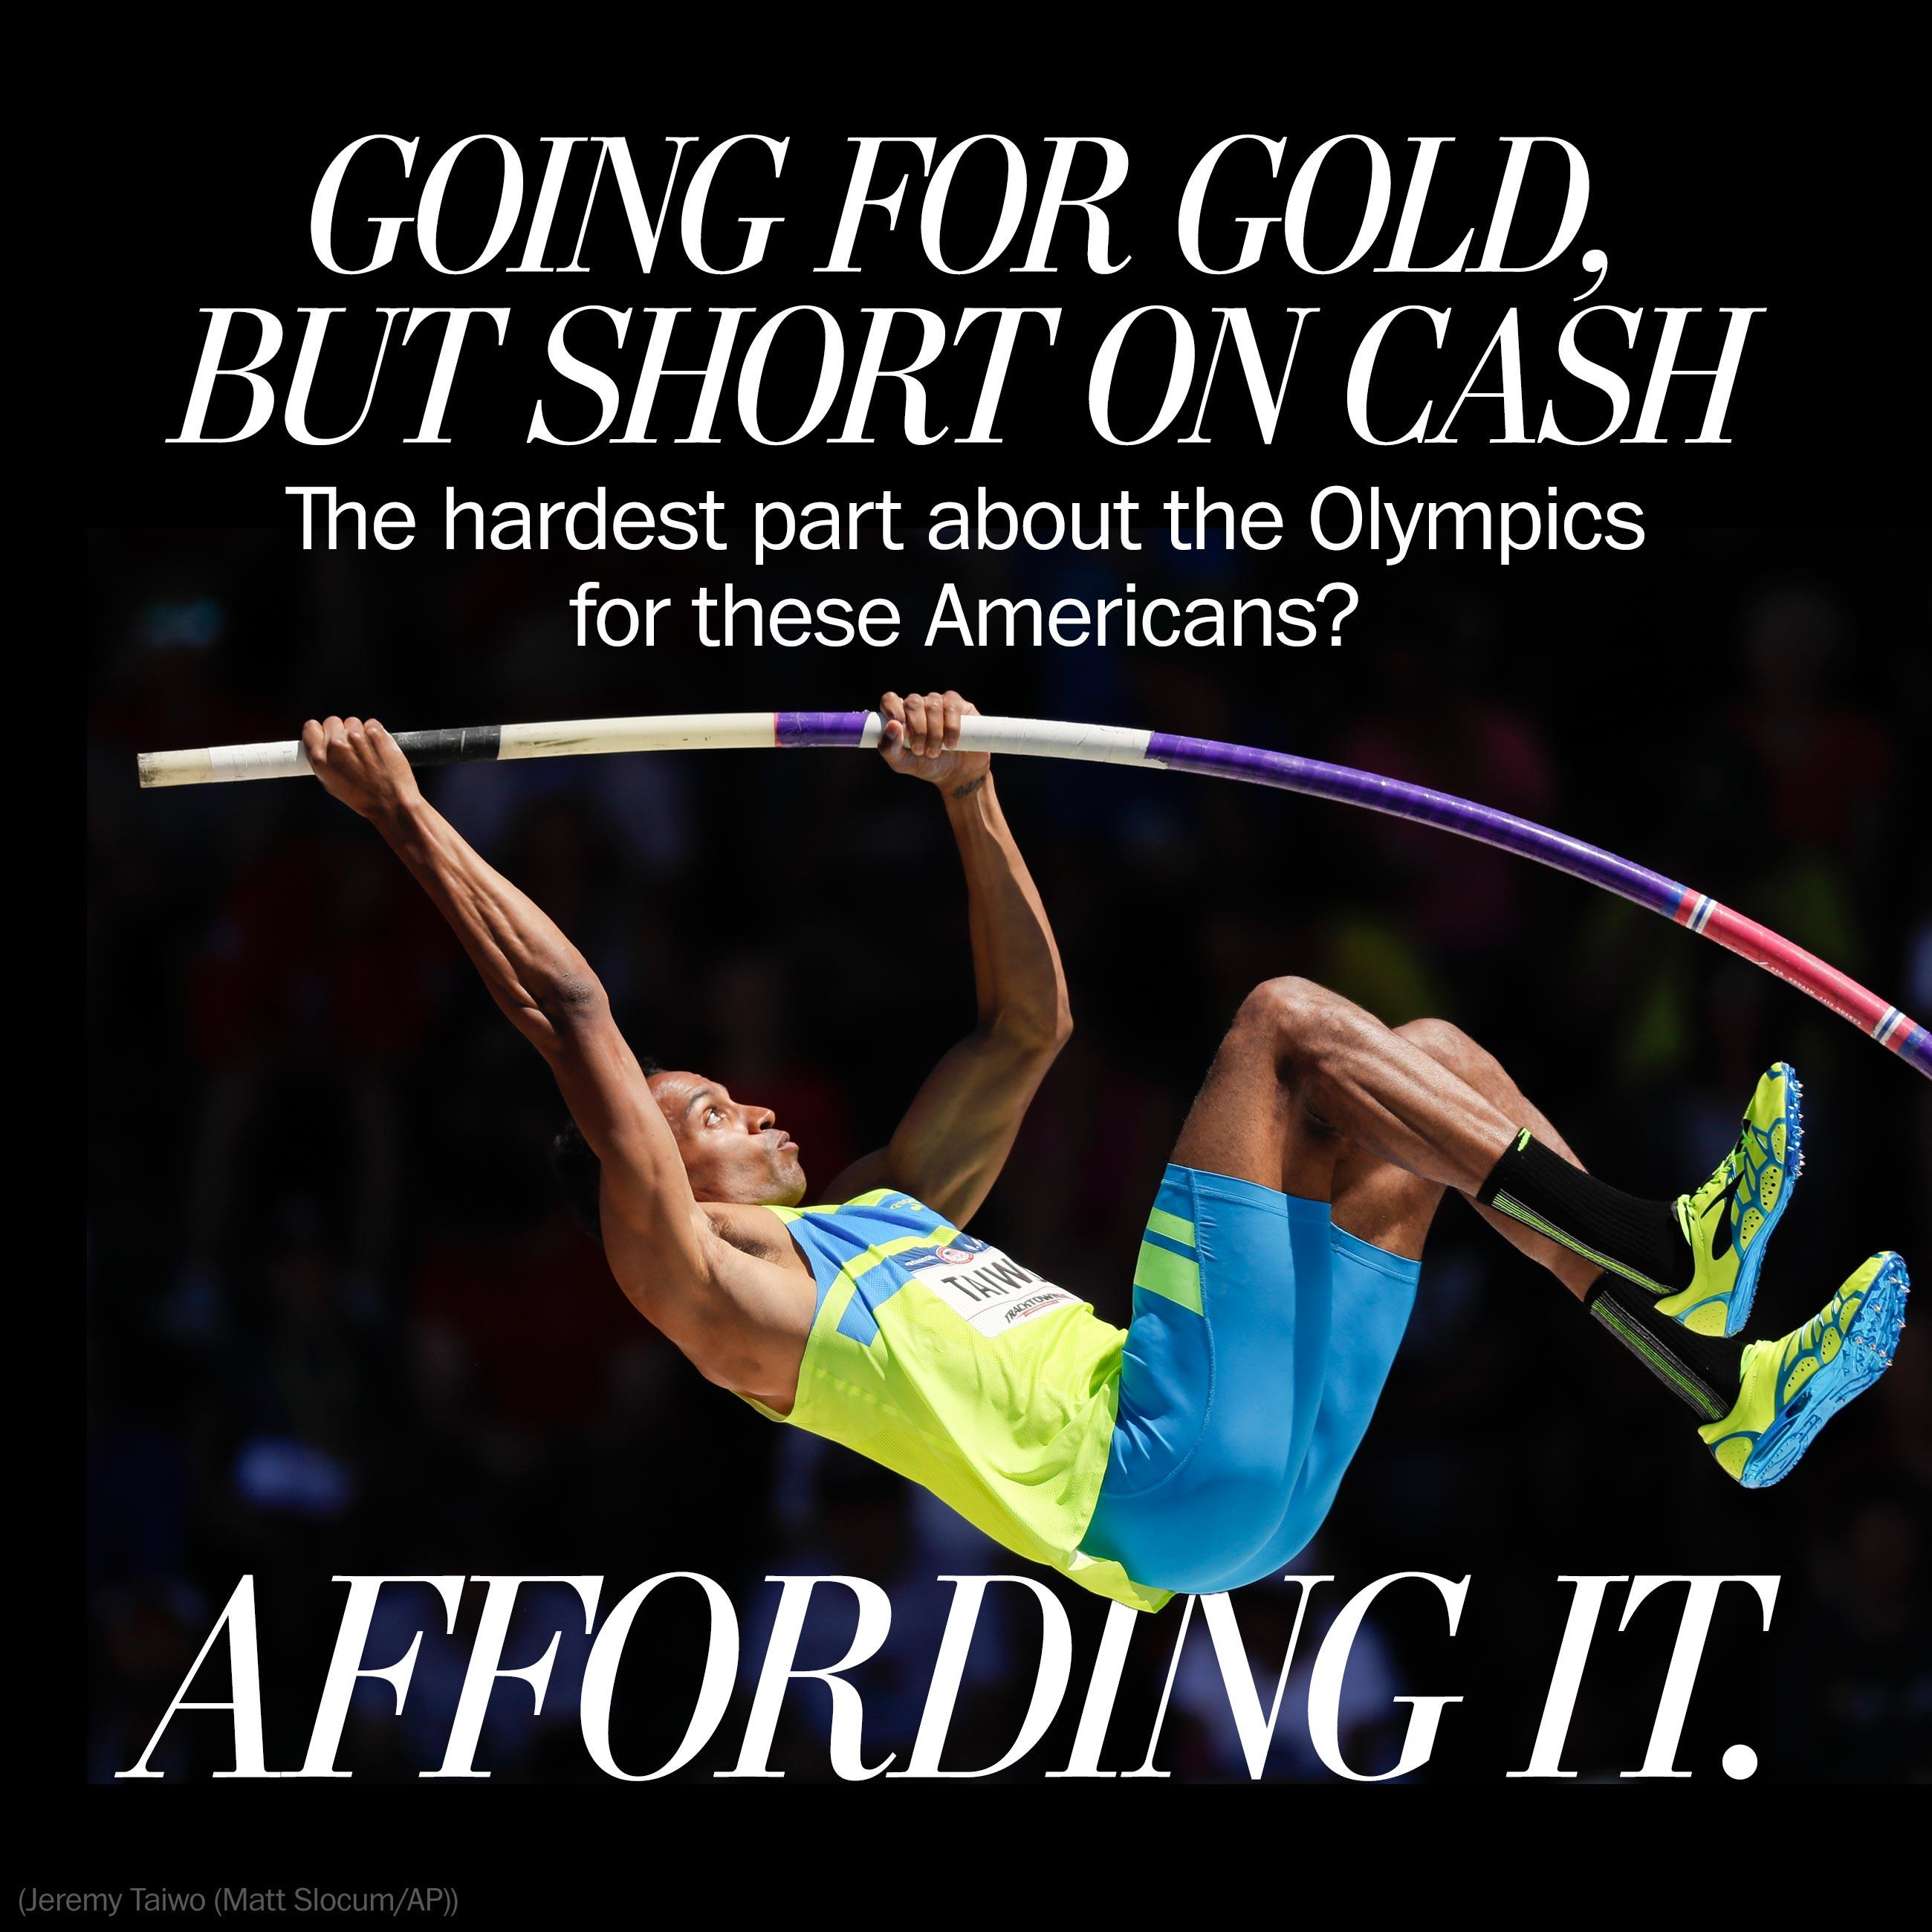 The hardest part about making the Olympics for these Americans? Affording it.